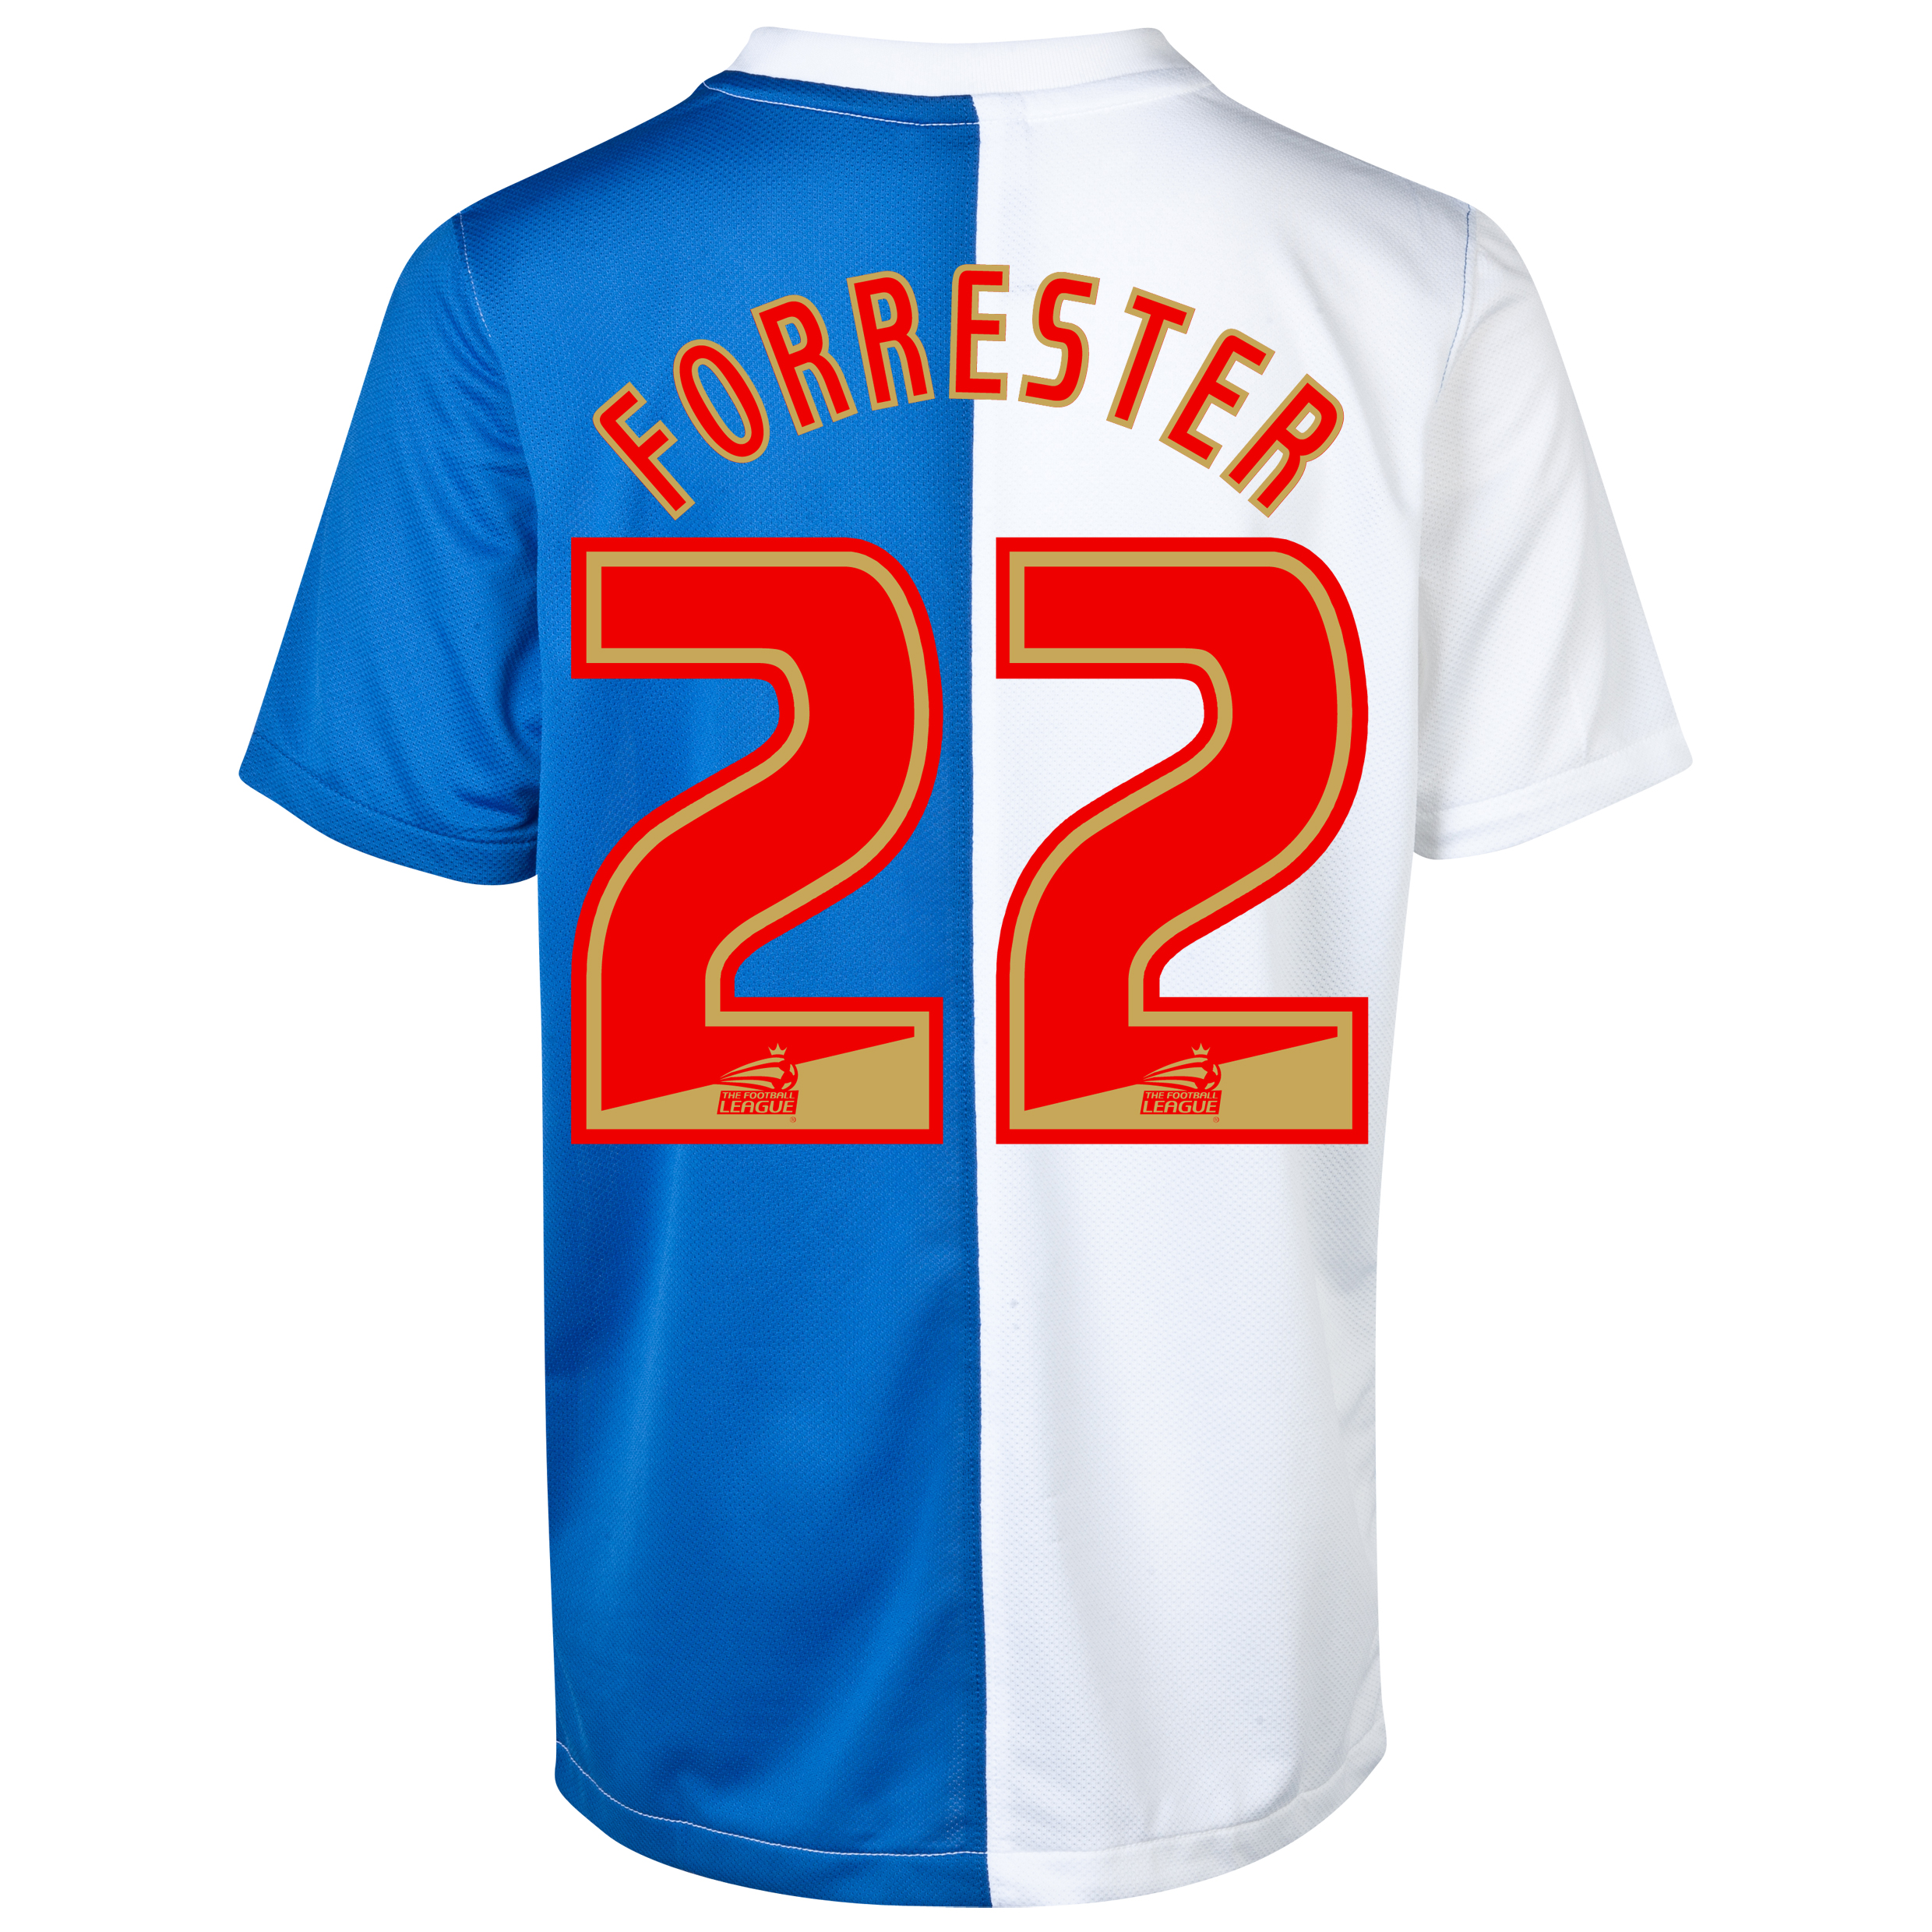 Blackburn Rovers Home Shirt 2013/14 with Forrester 22 printing